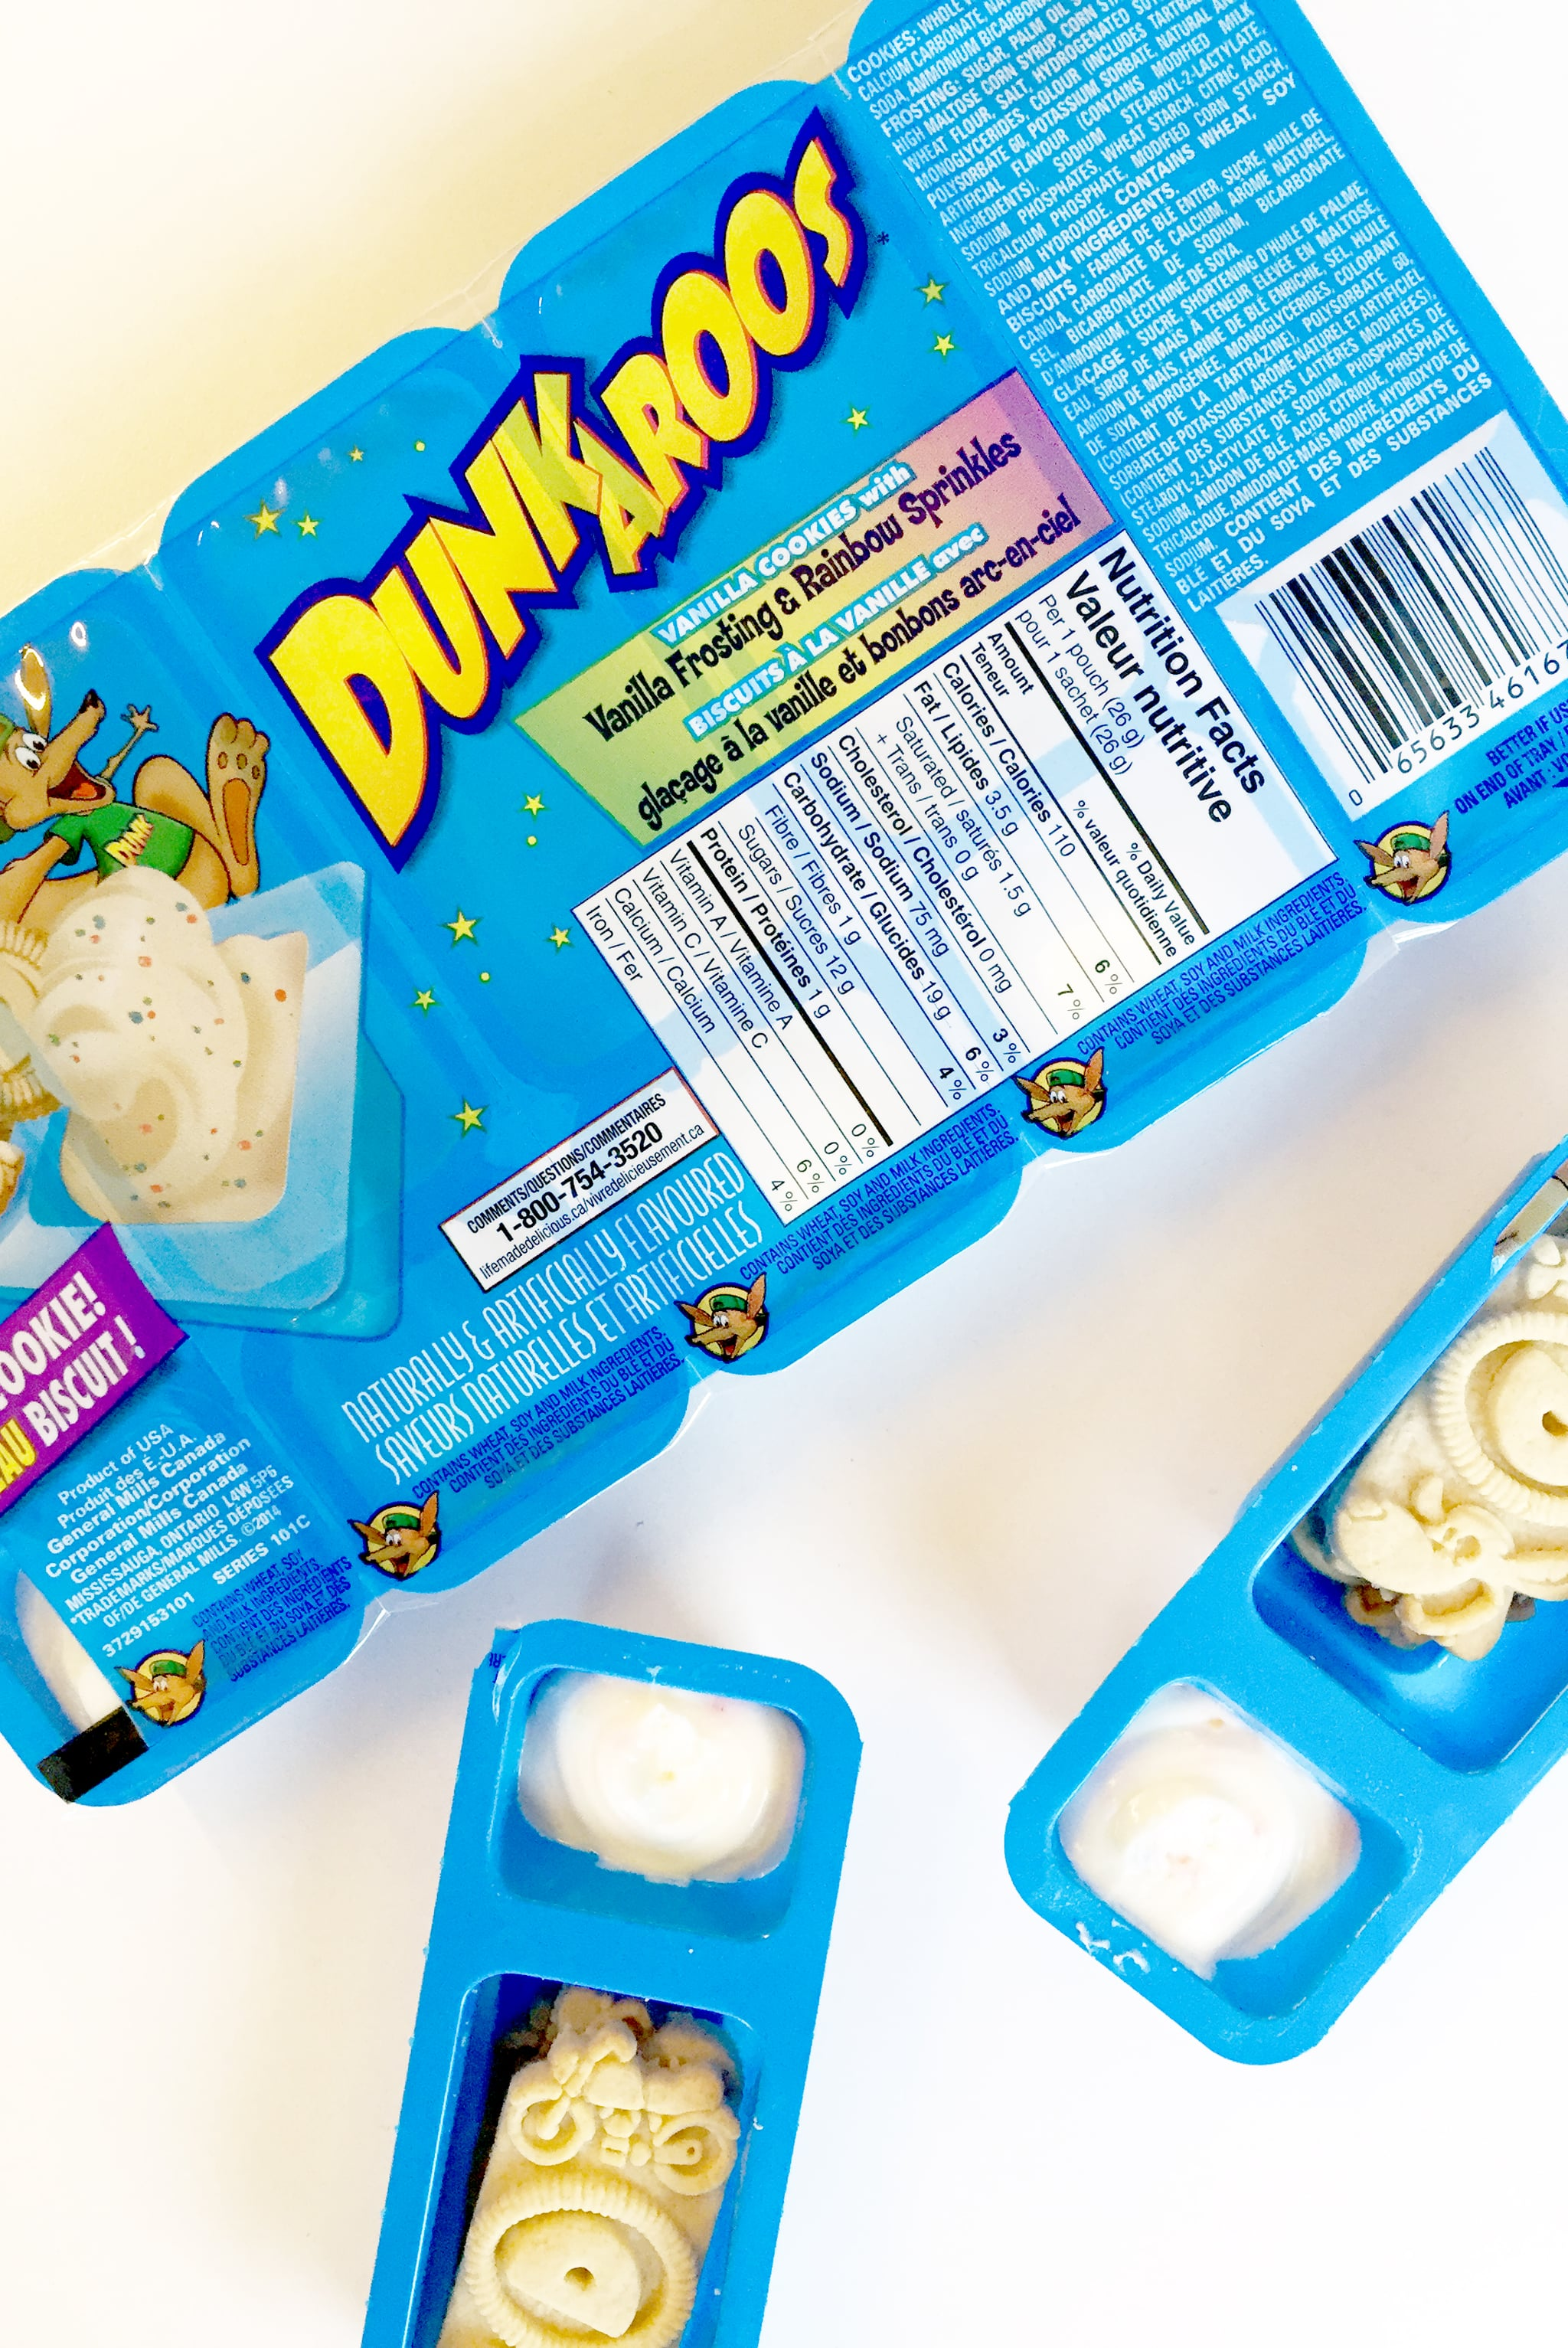 Where Can I Use It: Where Can I Buy Dunkaroos?